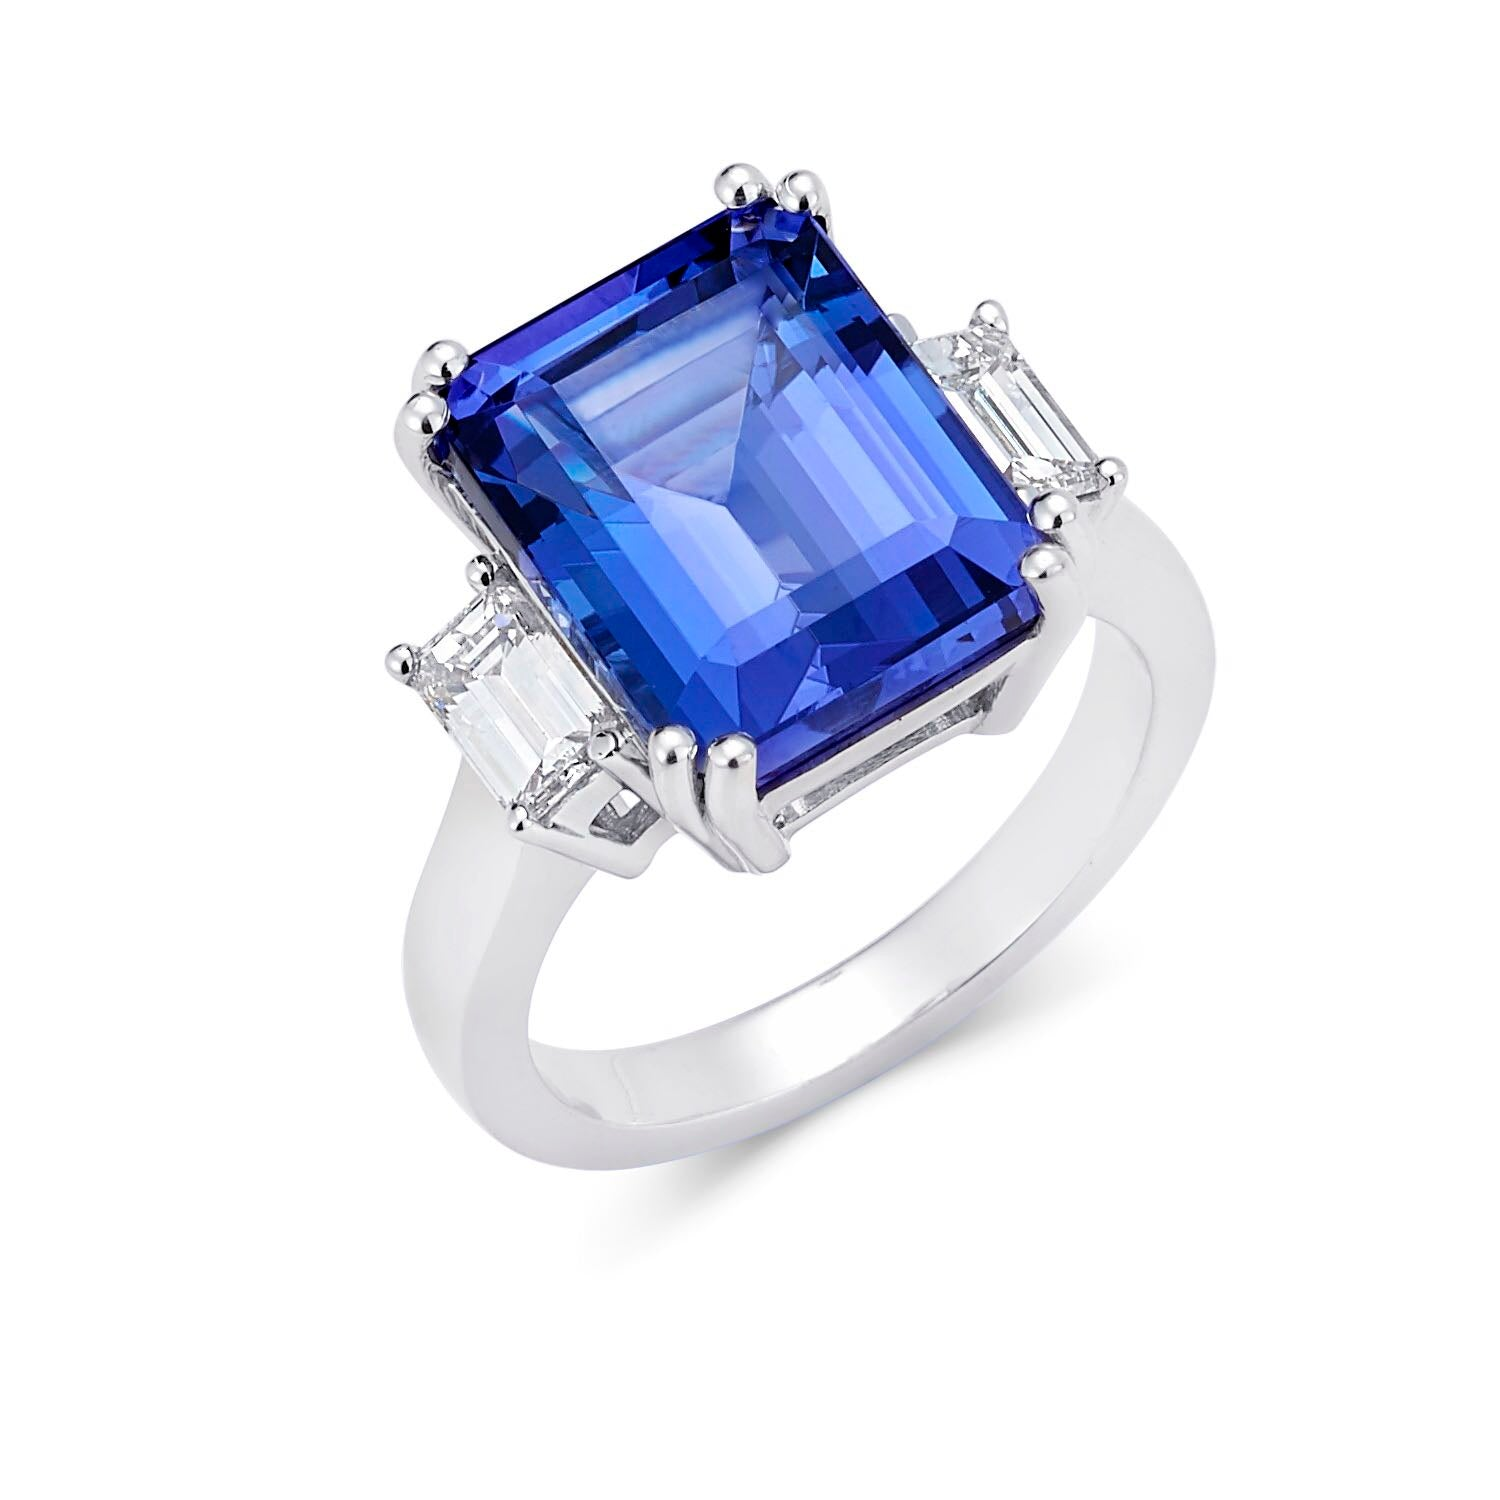 Traditional Three Stone Emerald Cut Tanzanite & Diamond Ring